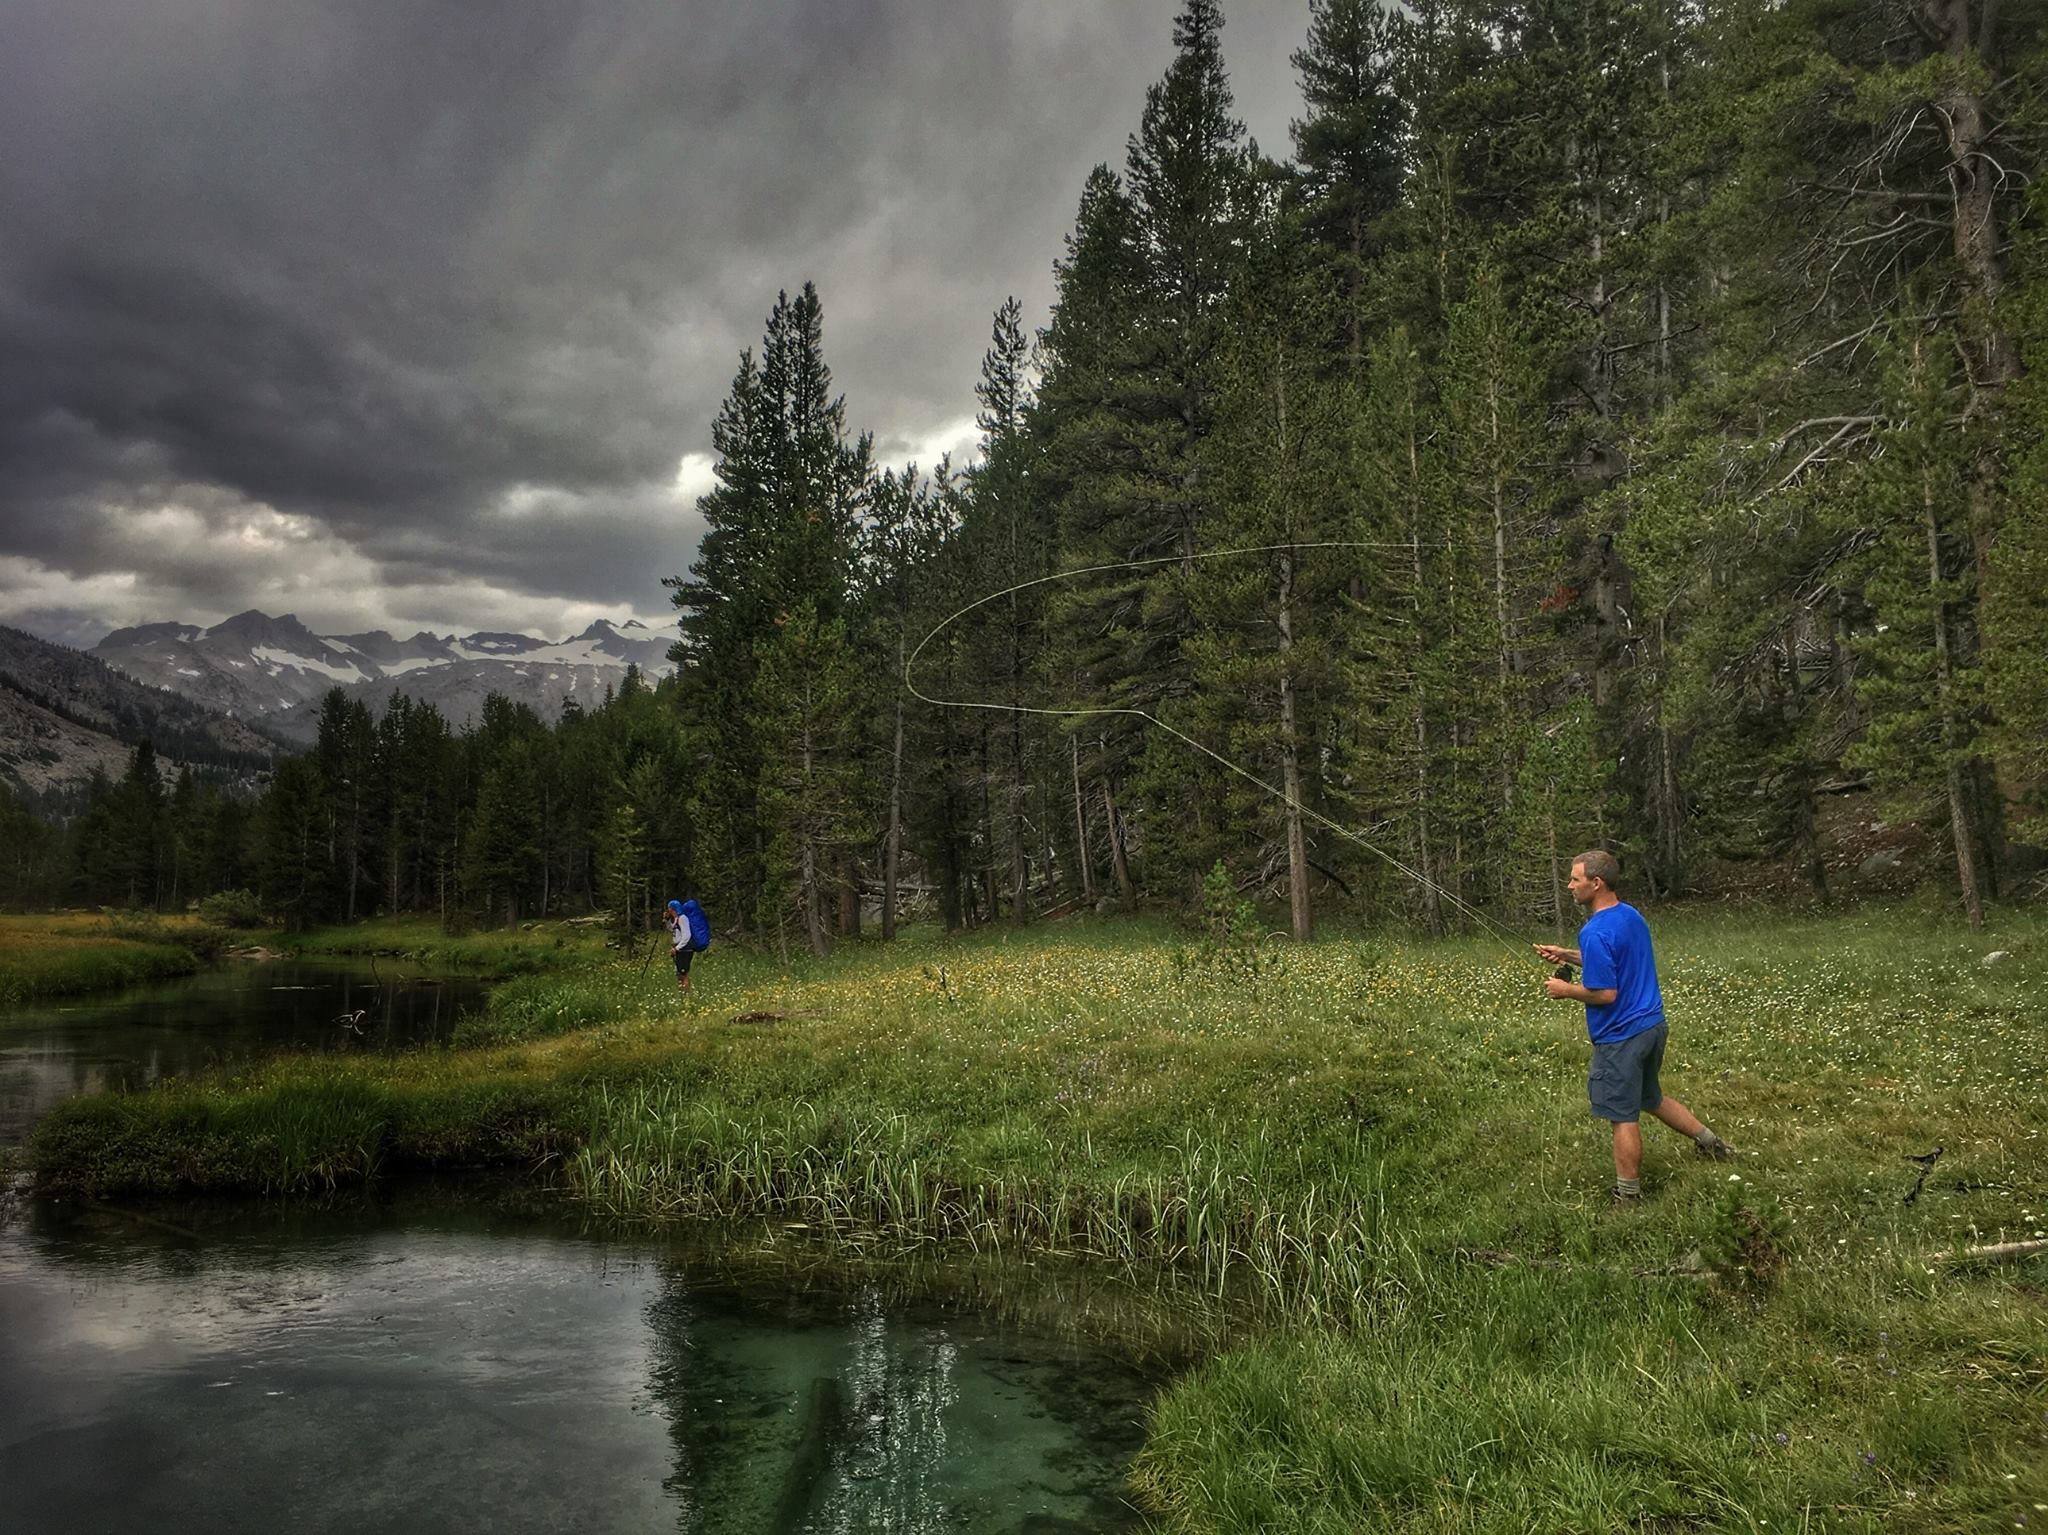 Man fly fishing next to clear brook with snowy mountain in the background